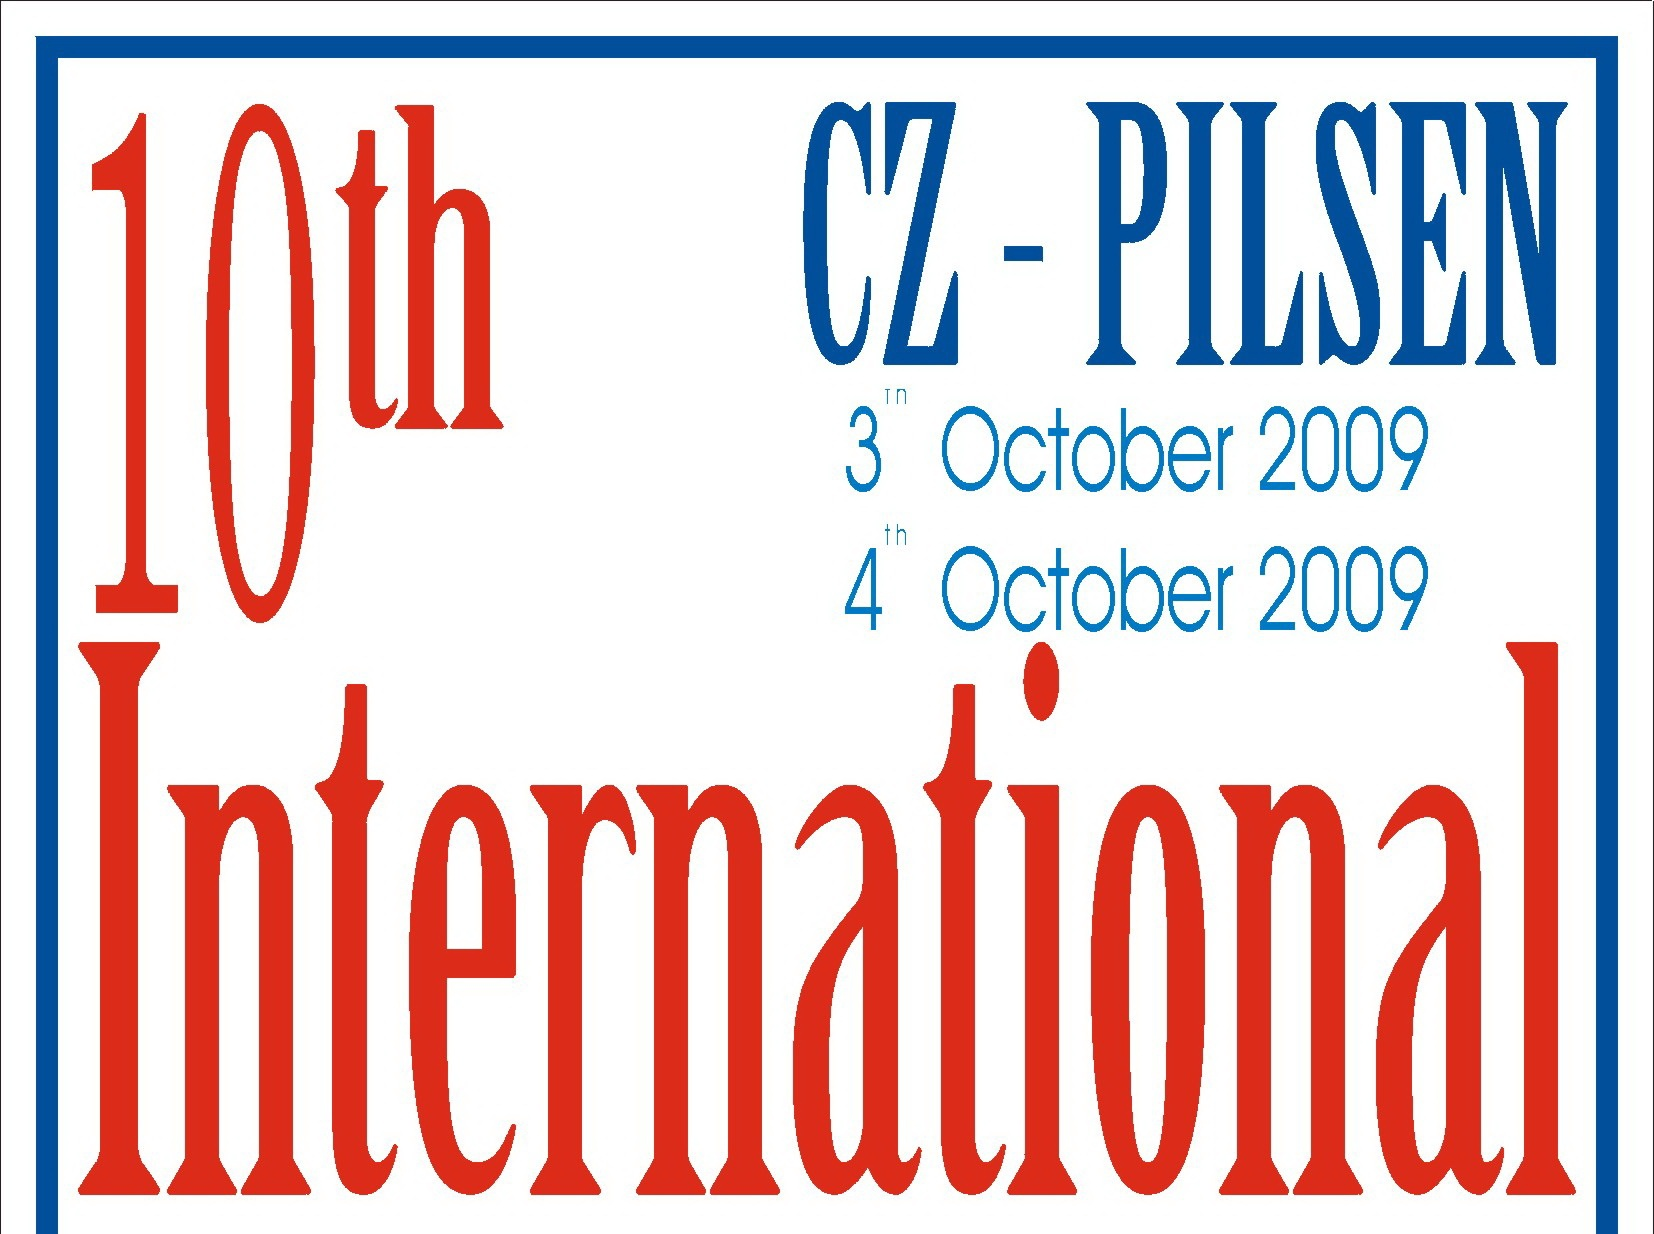 CZECH KARATE OPEN - PILSEN 2009